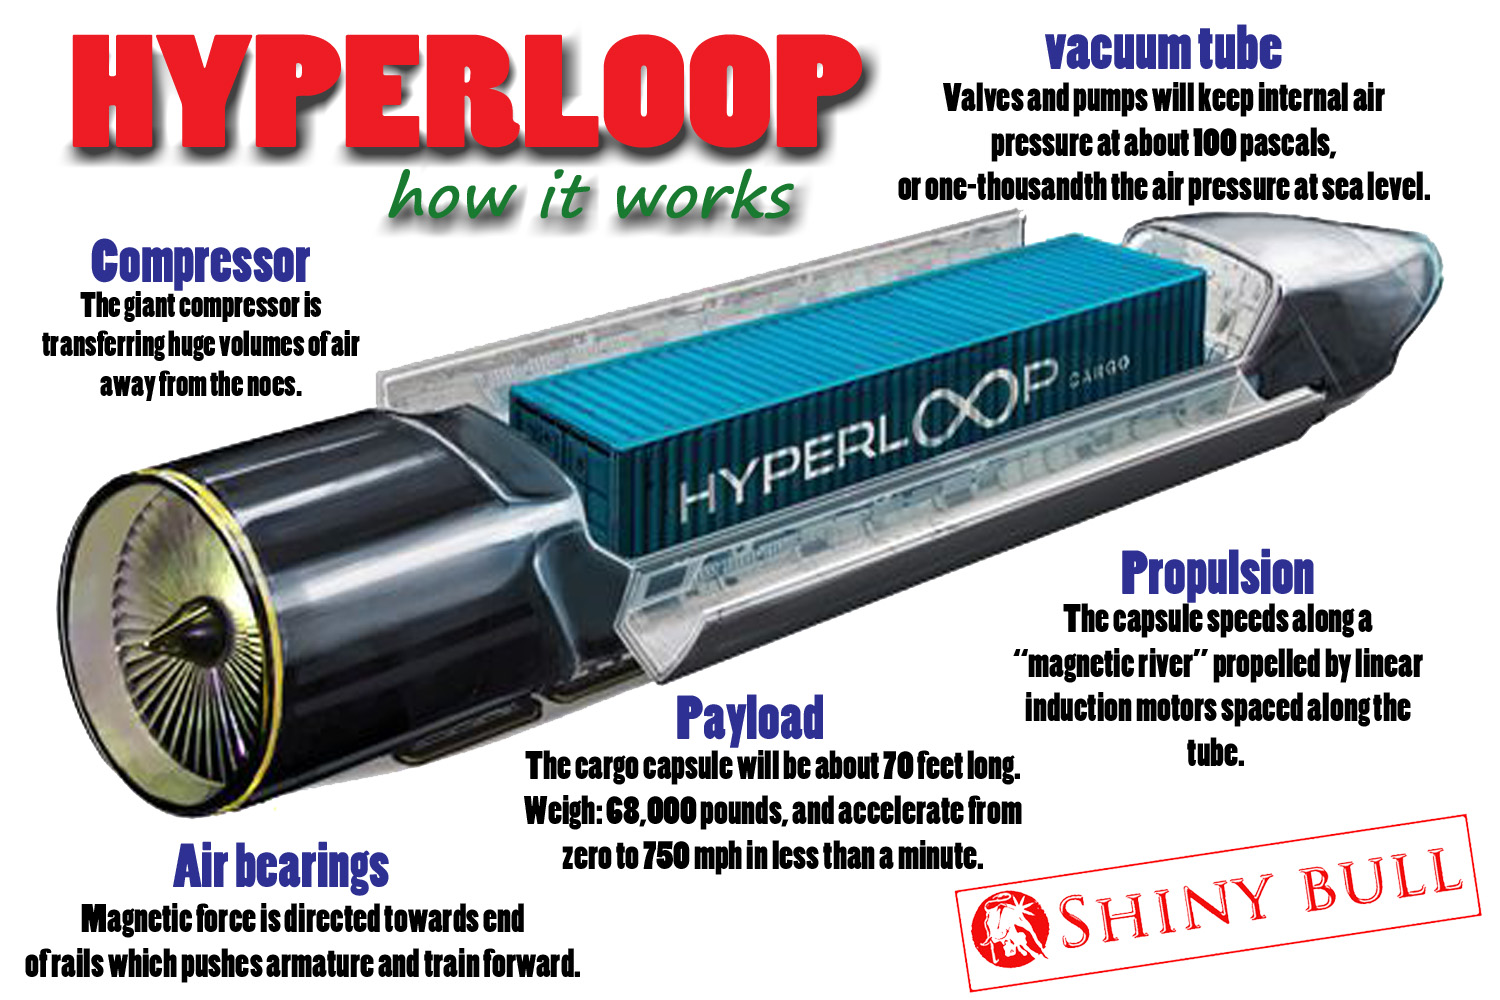 an american company called hyperloop transportation technologies htt want to do something with that they has developed a transportation system based on